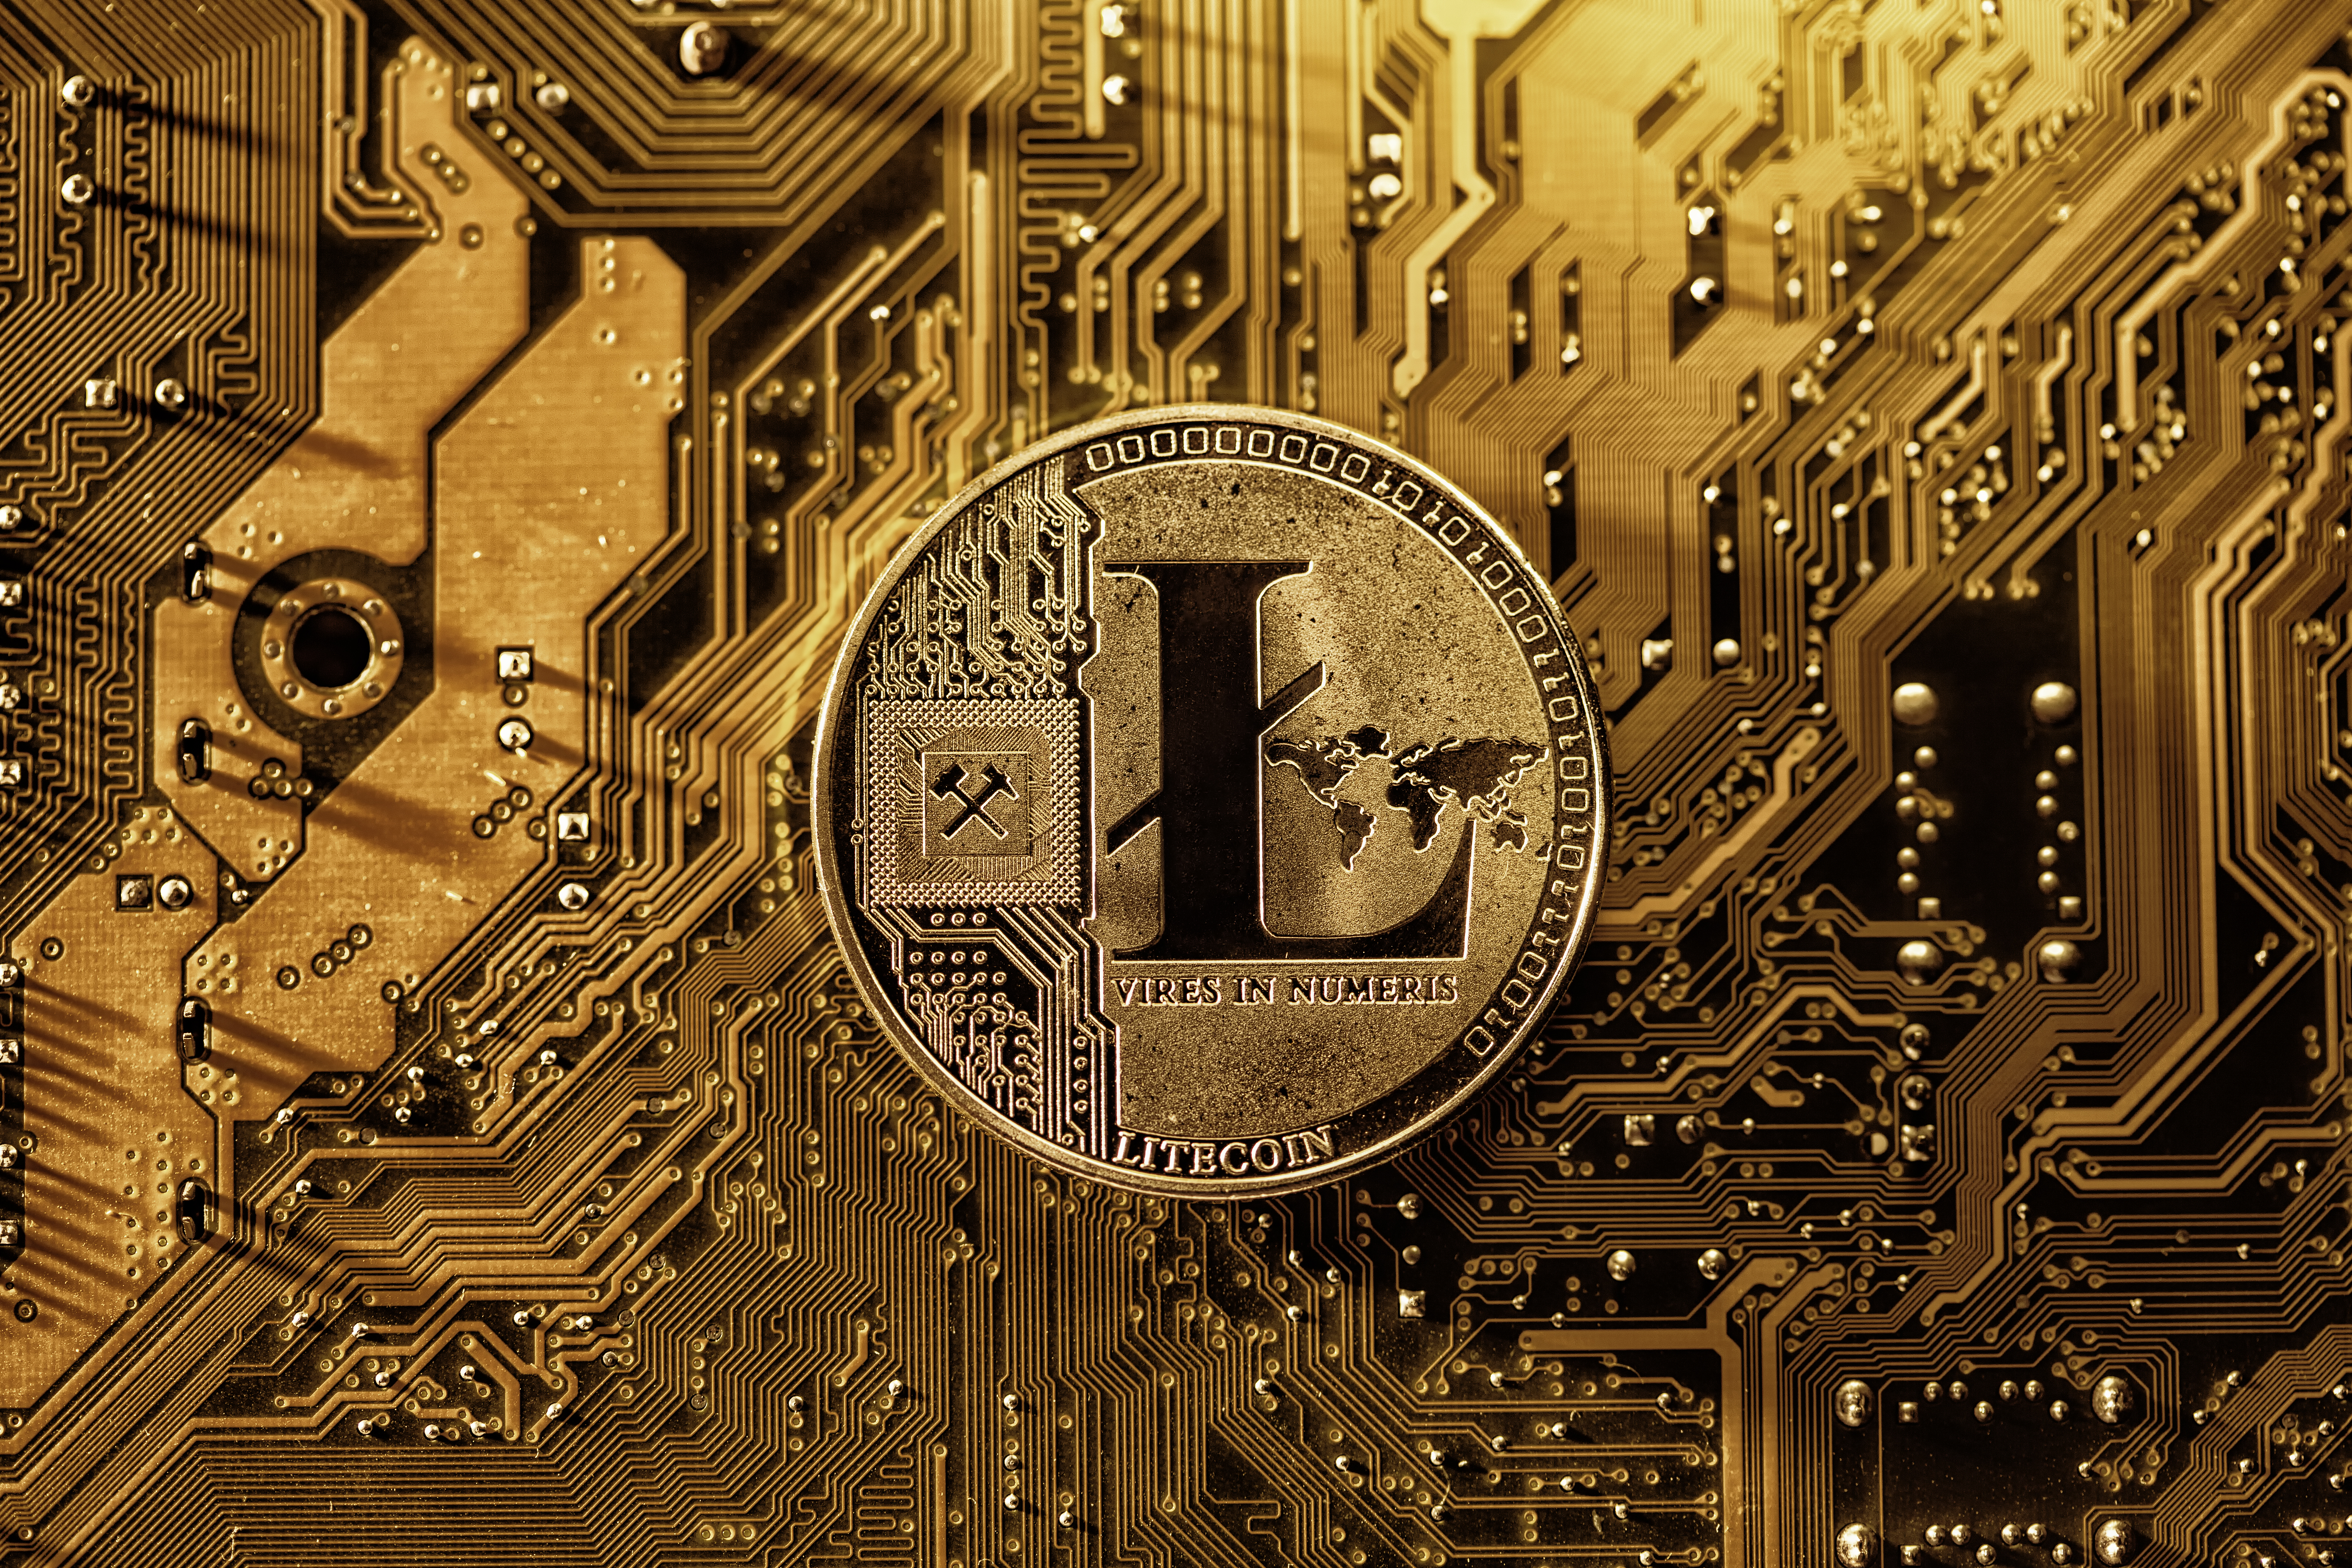 Representation of a Litecoin token in front of a computer motherboard